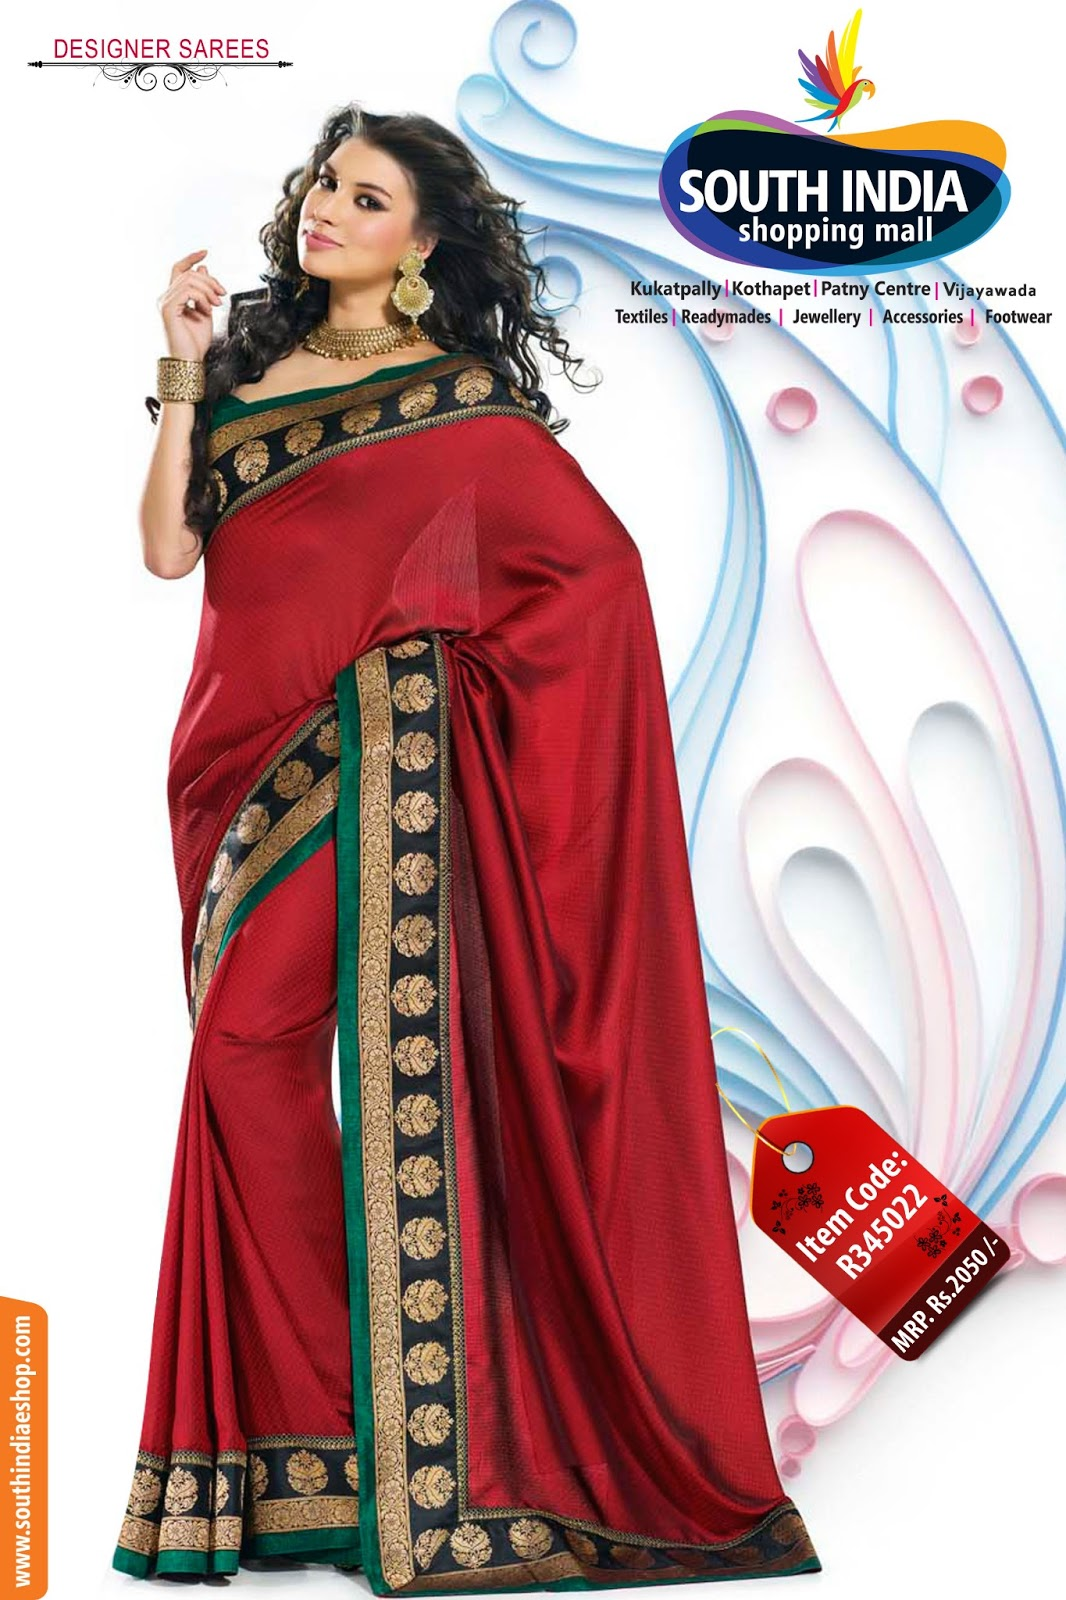 south india shopping mall latest designer sarees collections south india shopping mall. Black Bedroom Furniture Sets. Home Design Ideas